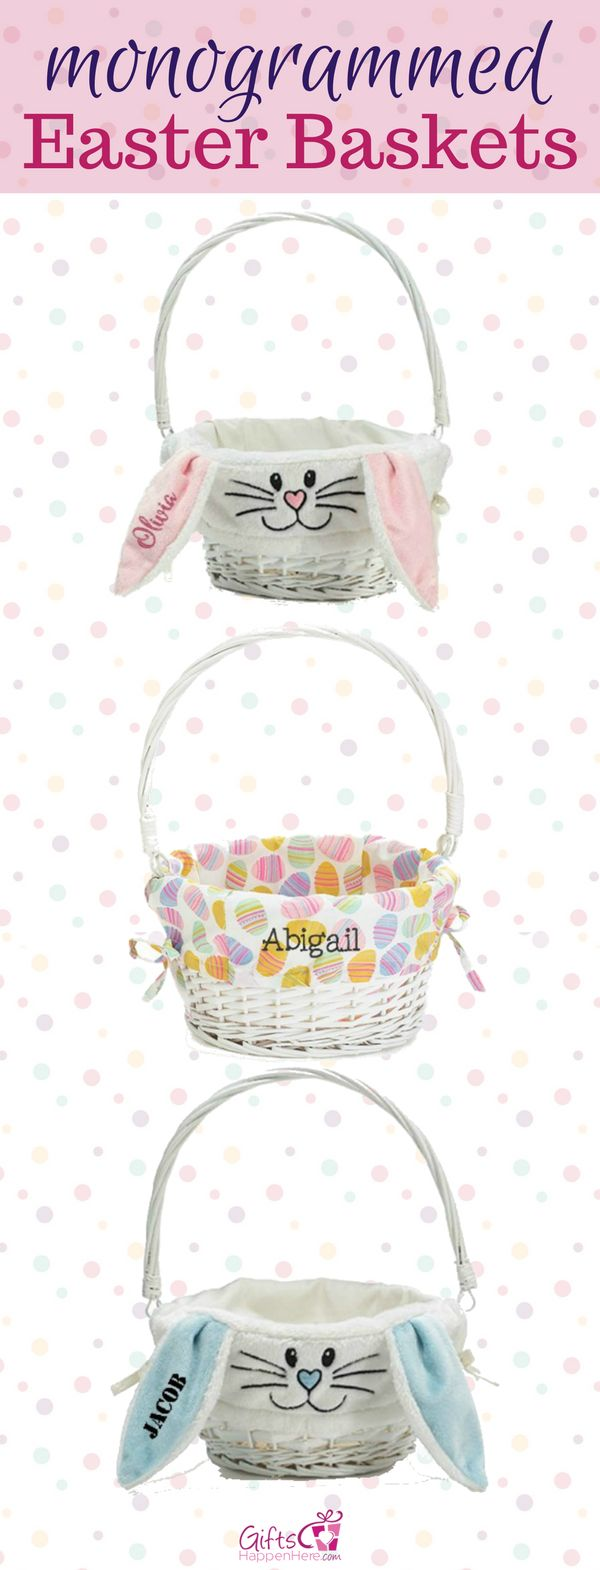 Monogrammed Easter Baskets perfect for your kids! Personalized Easter Baskets with custom name or monogram. Easter Buckets / Easter Baskets for Girls / Easter Basket for Boys / Easter Baskets for Kids / Easter Bunny / Easter Bunny Basket